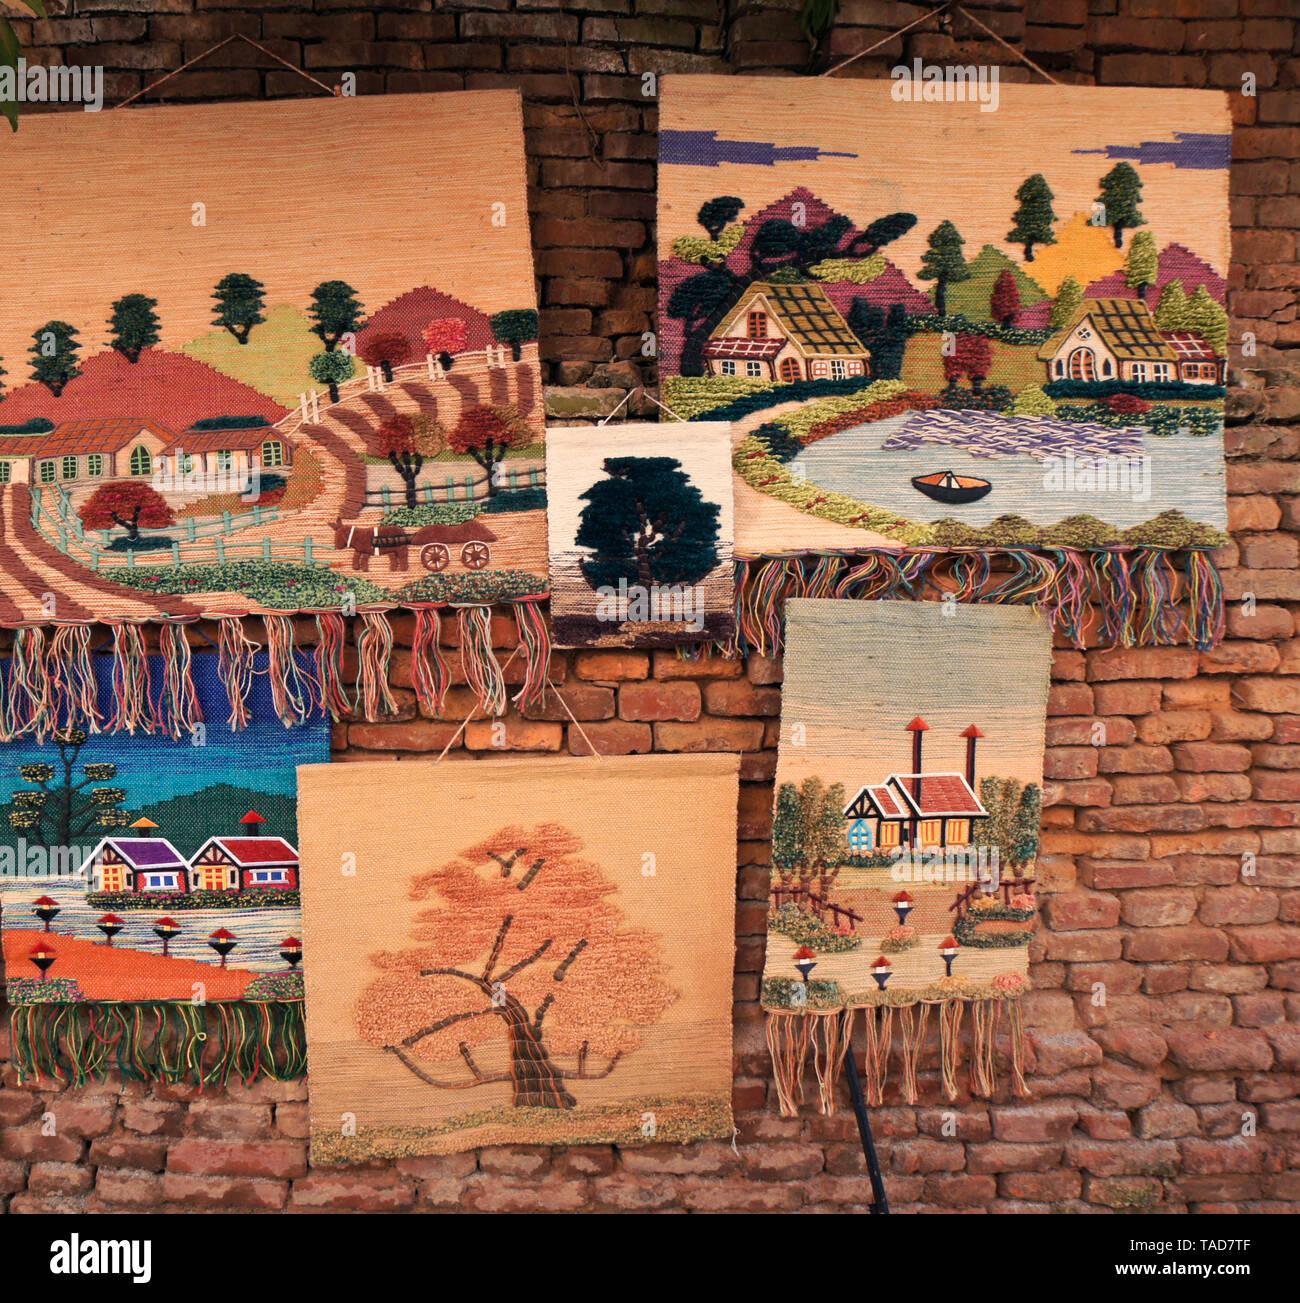 Woven and embroidered wall hangings for sale near Durbar Square, Bhaktapur, Kathmandu Valley, Nepal - Stock Image